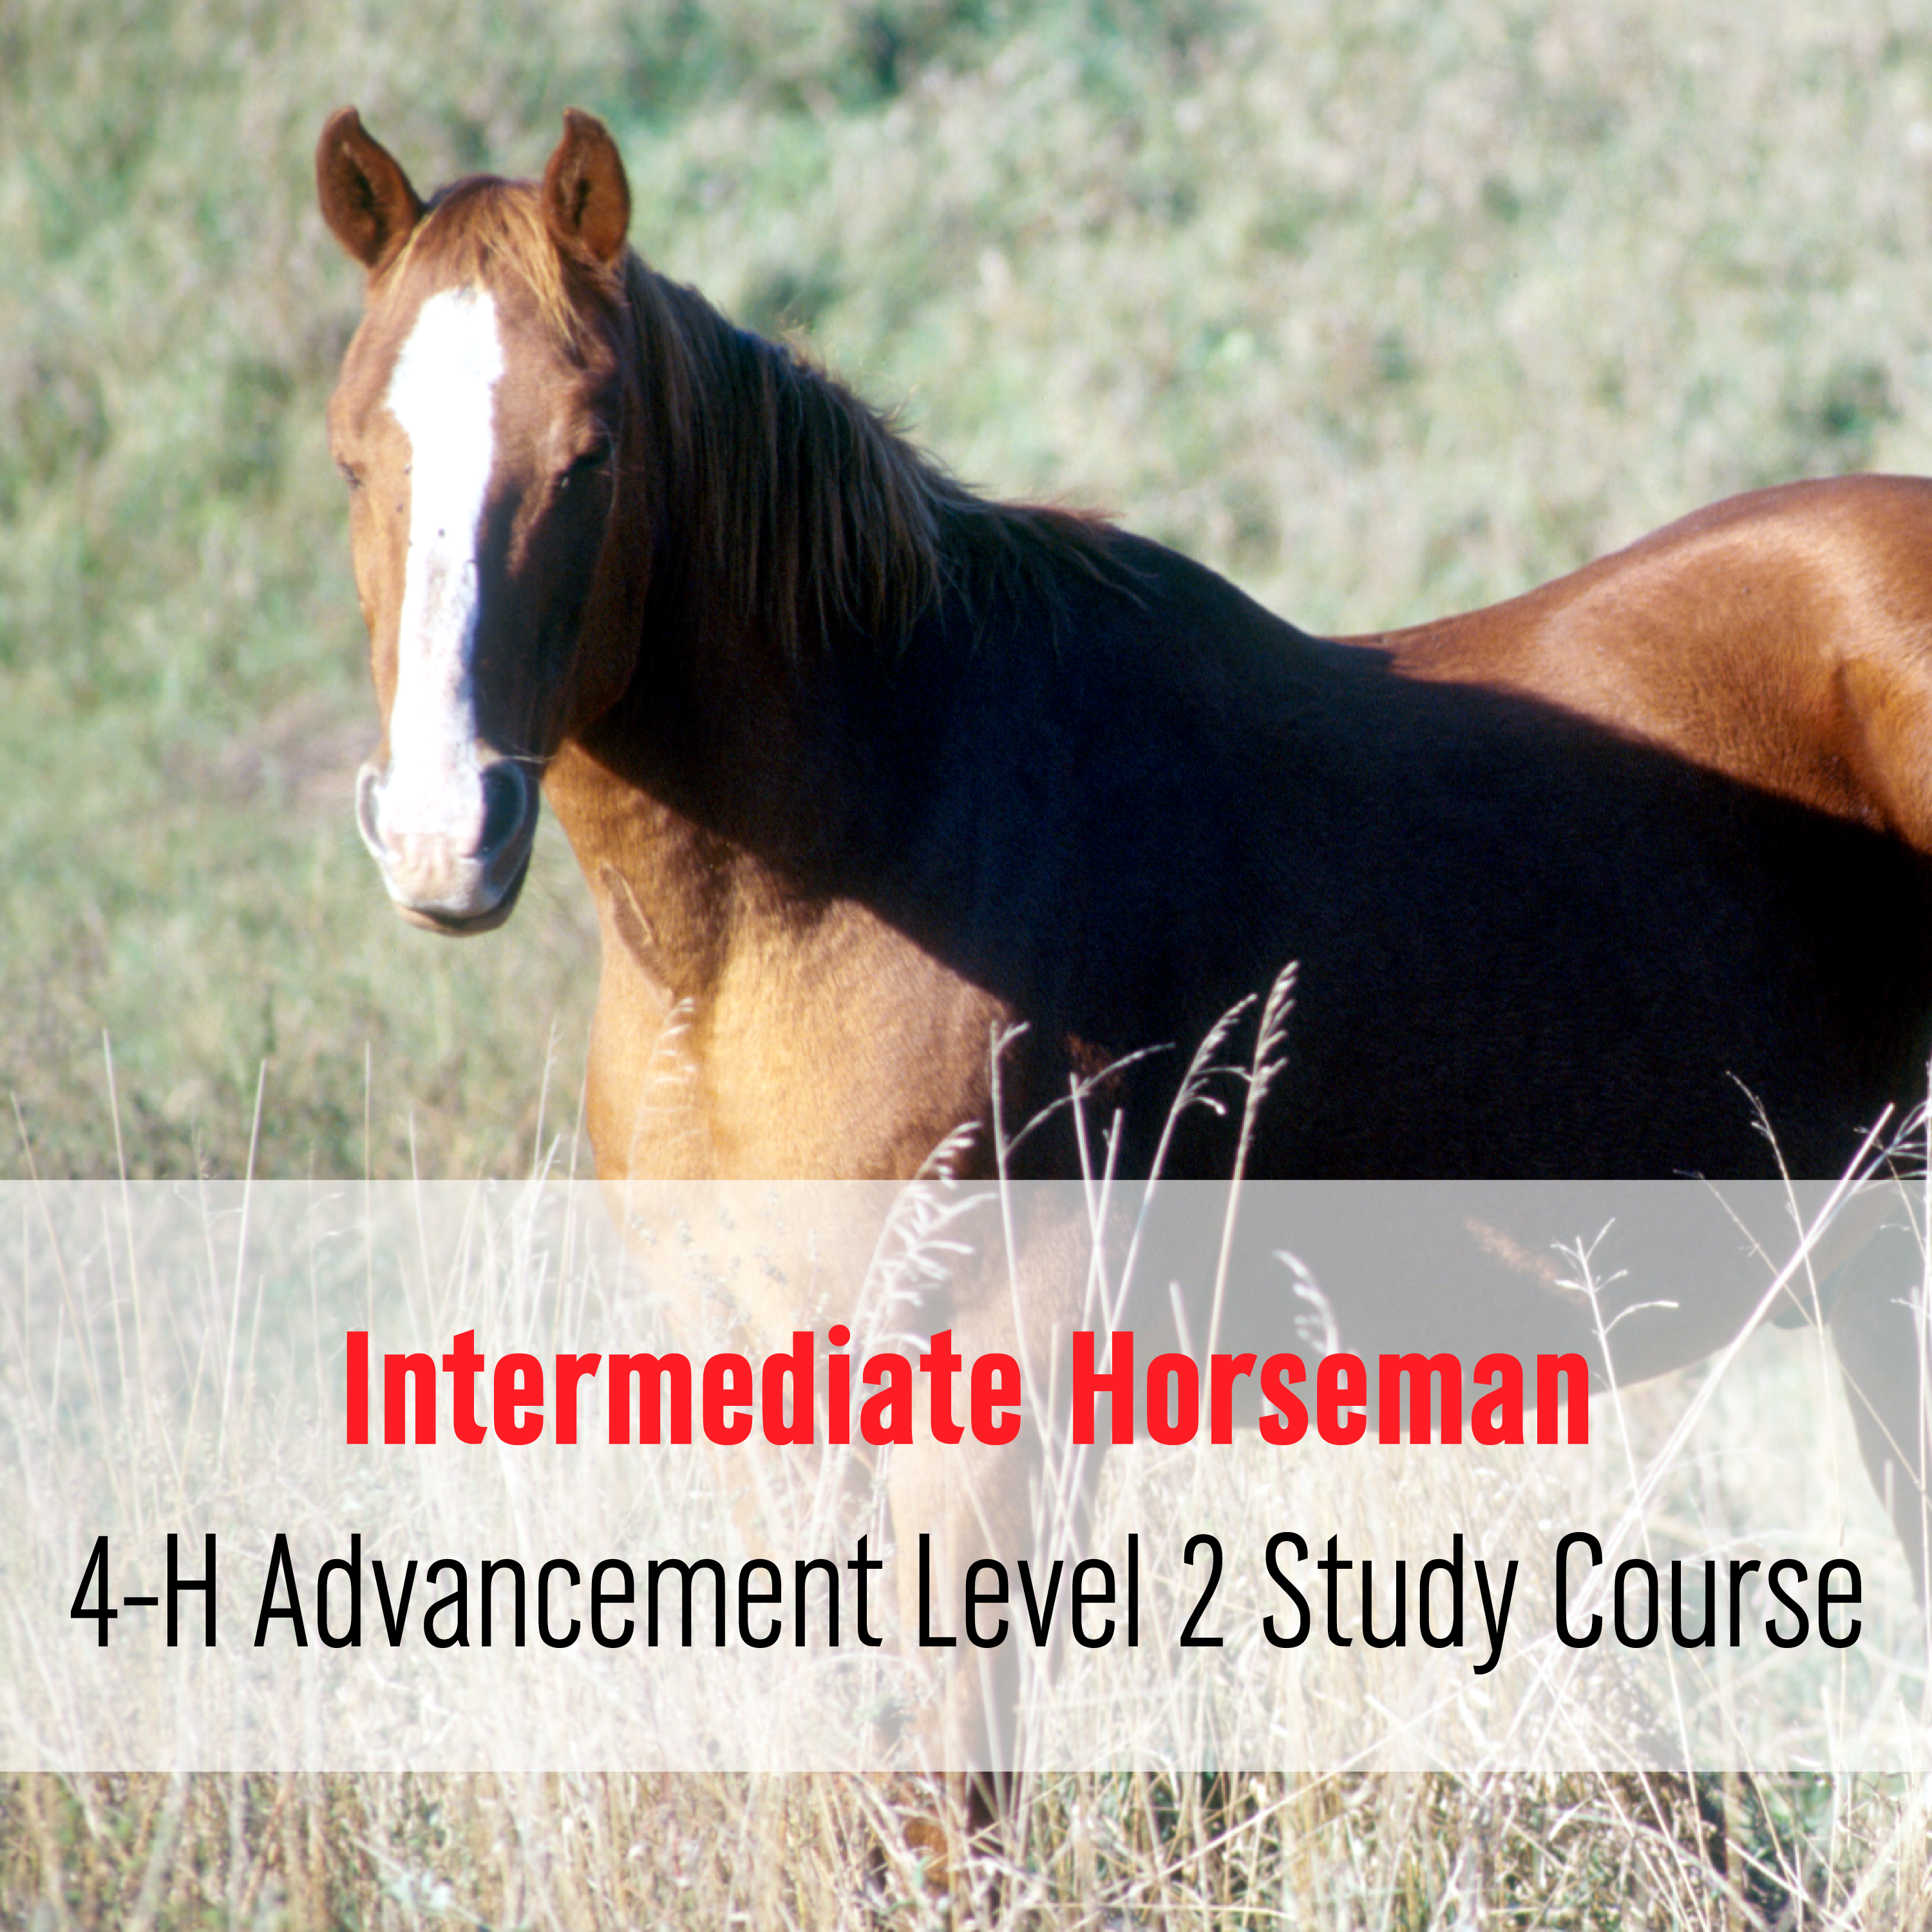 Intermediate Horseman: 4-H Advancement Level 2 Study Course